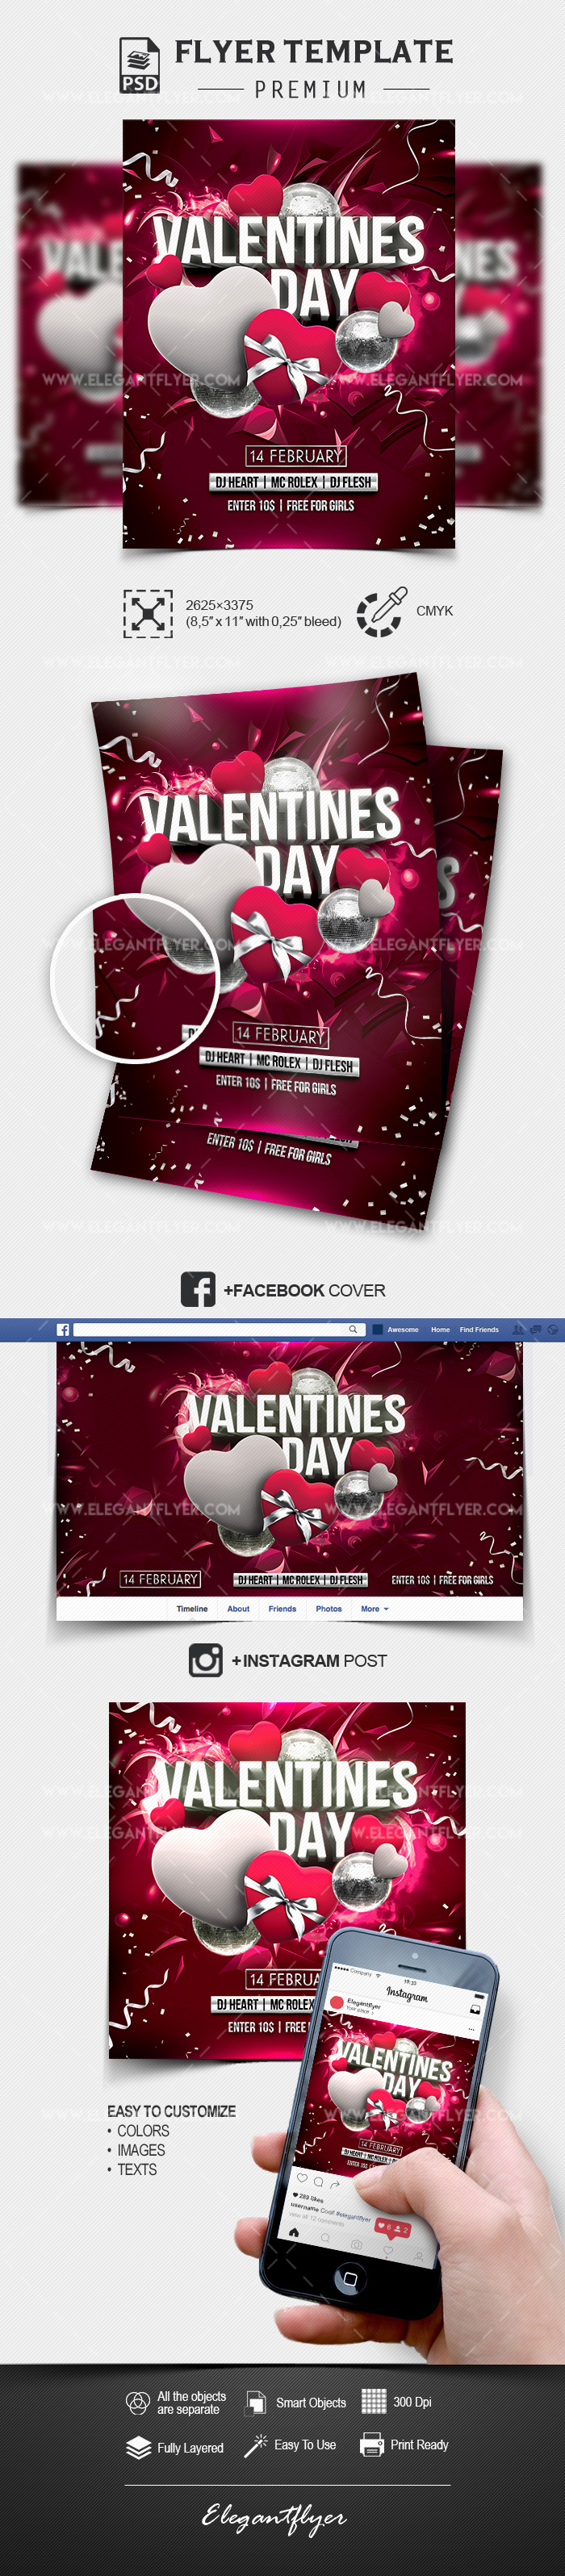 St. Valentine's Day Party – Flyer Template PSD + Facebook Cover + Instagram Post